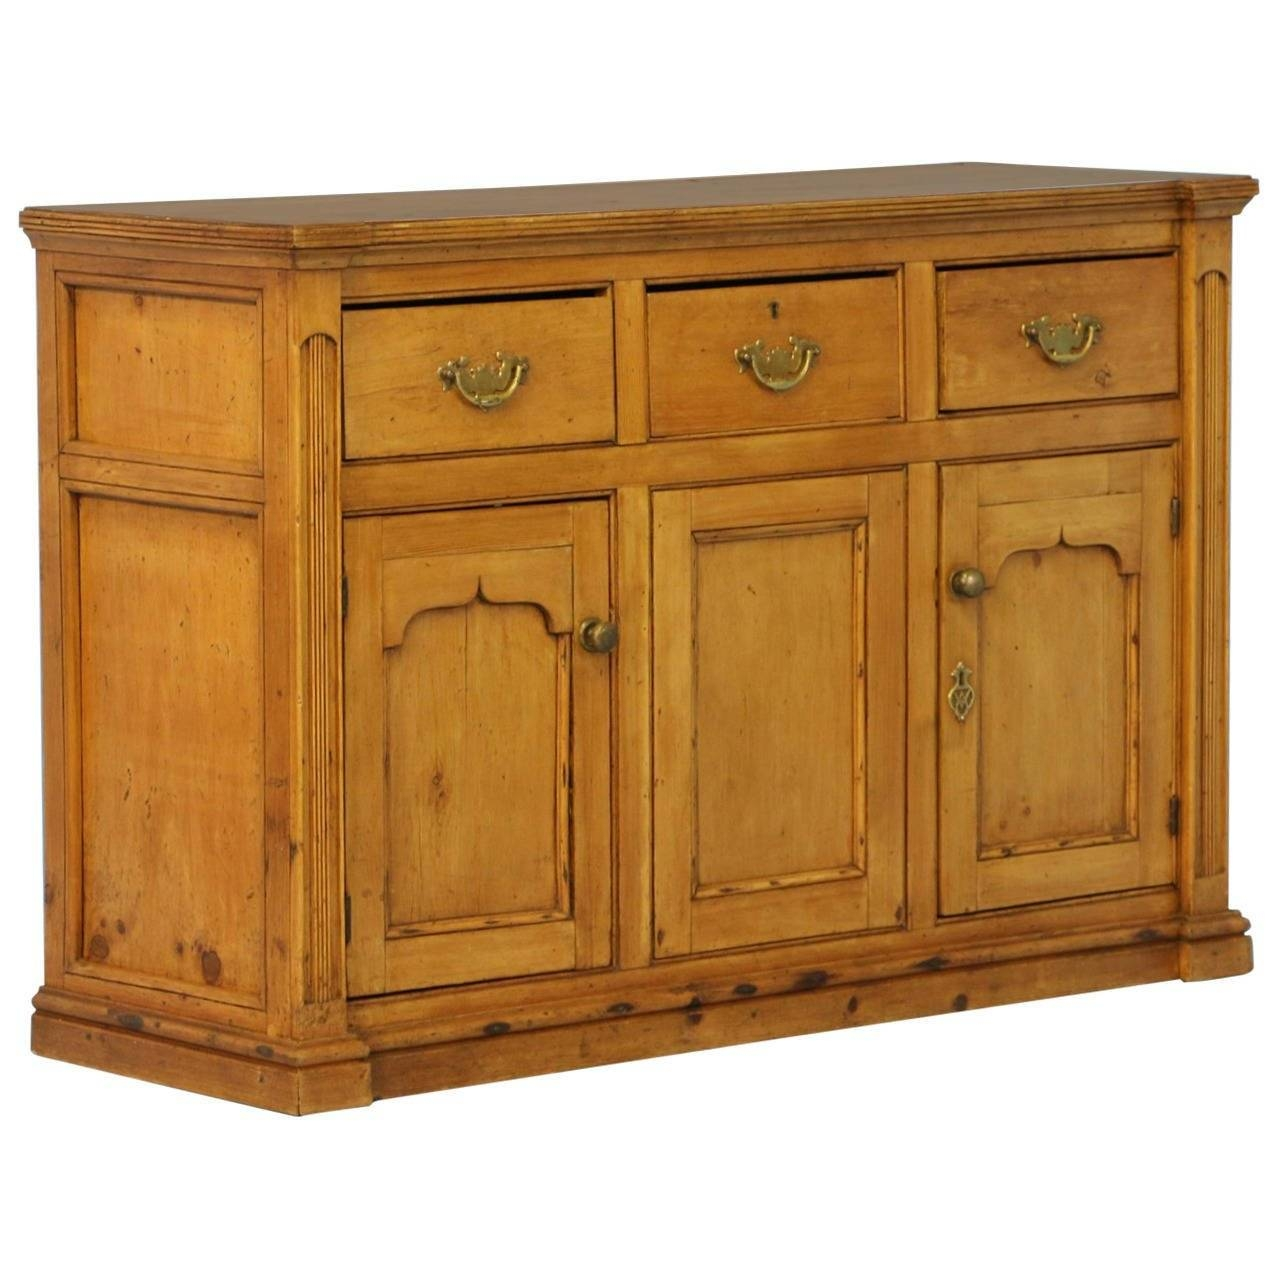 Antique Pine Buffet Sideboard, England, Circa 1850 At 1Stdibs Within Chinese Sideboards (View 5 of 30)